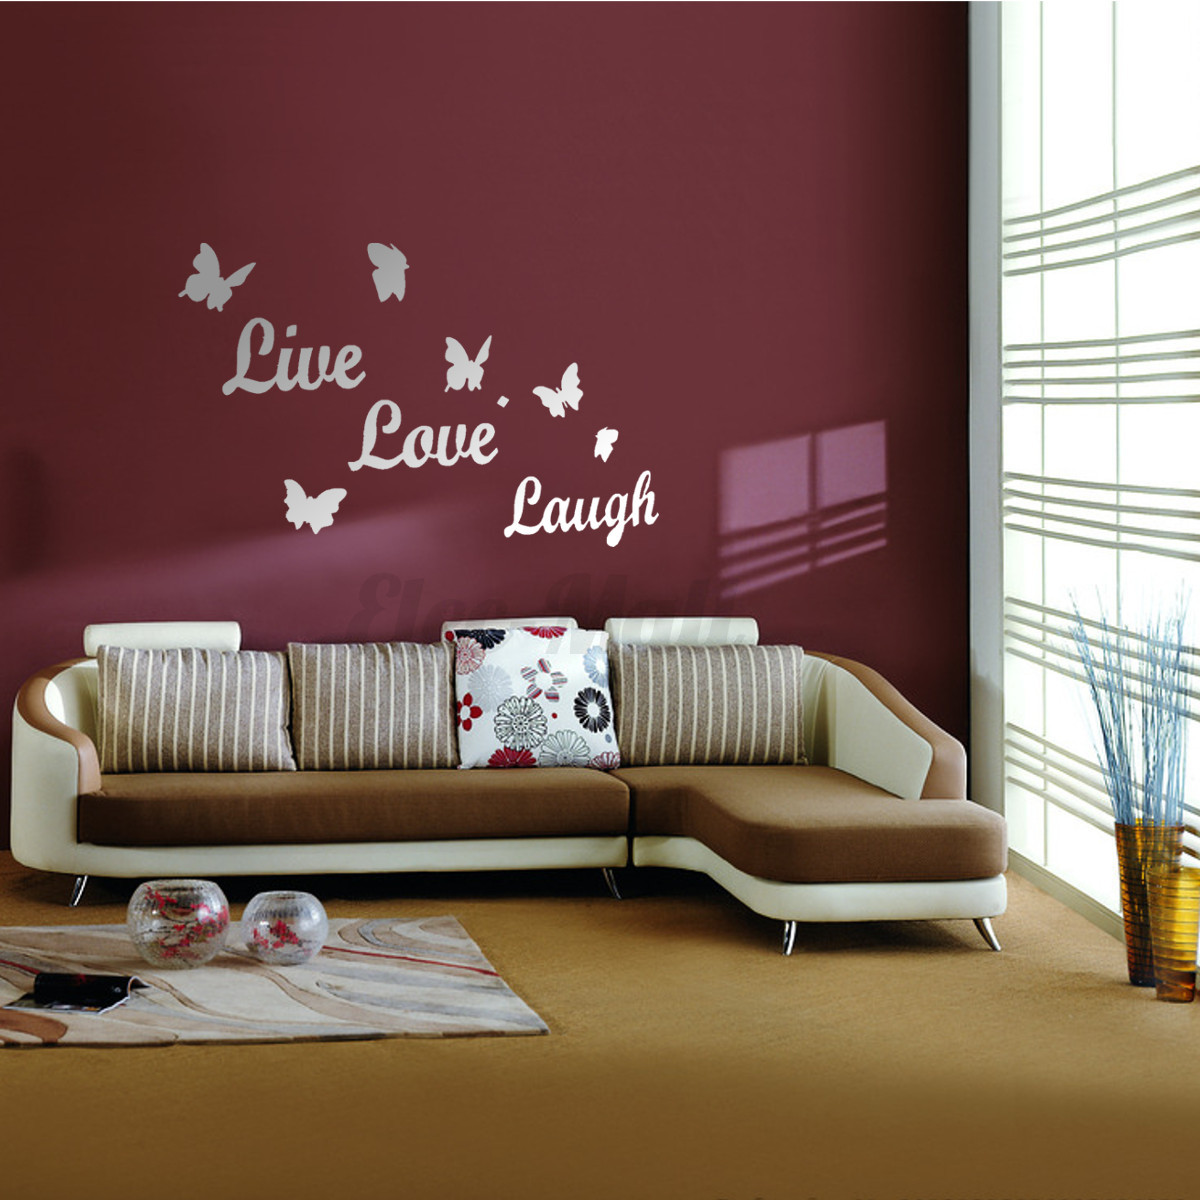 Diy Wall Art For Living Room: Removable DIY 3D Mirror Surface Wall Stickers Mural Art